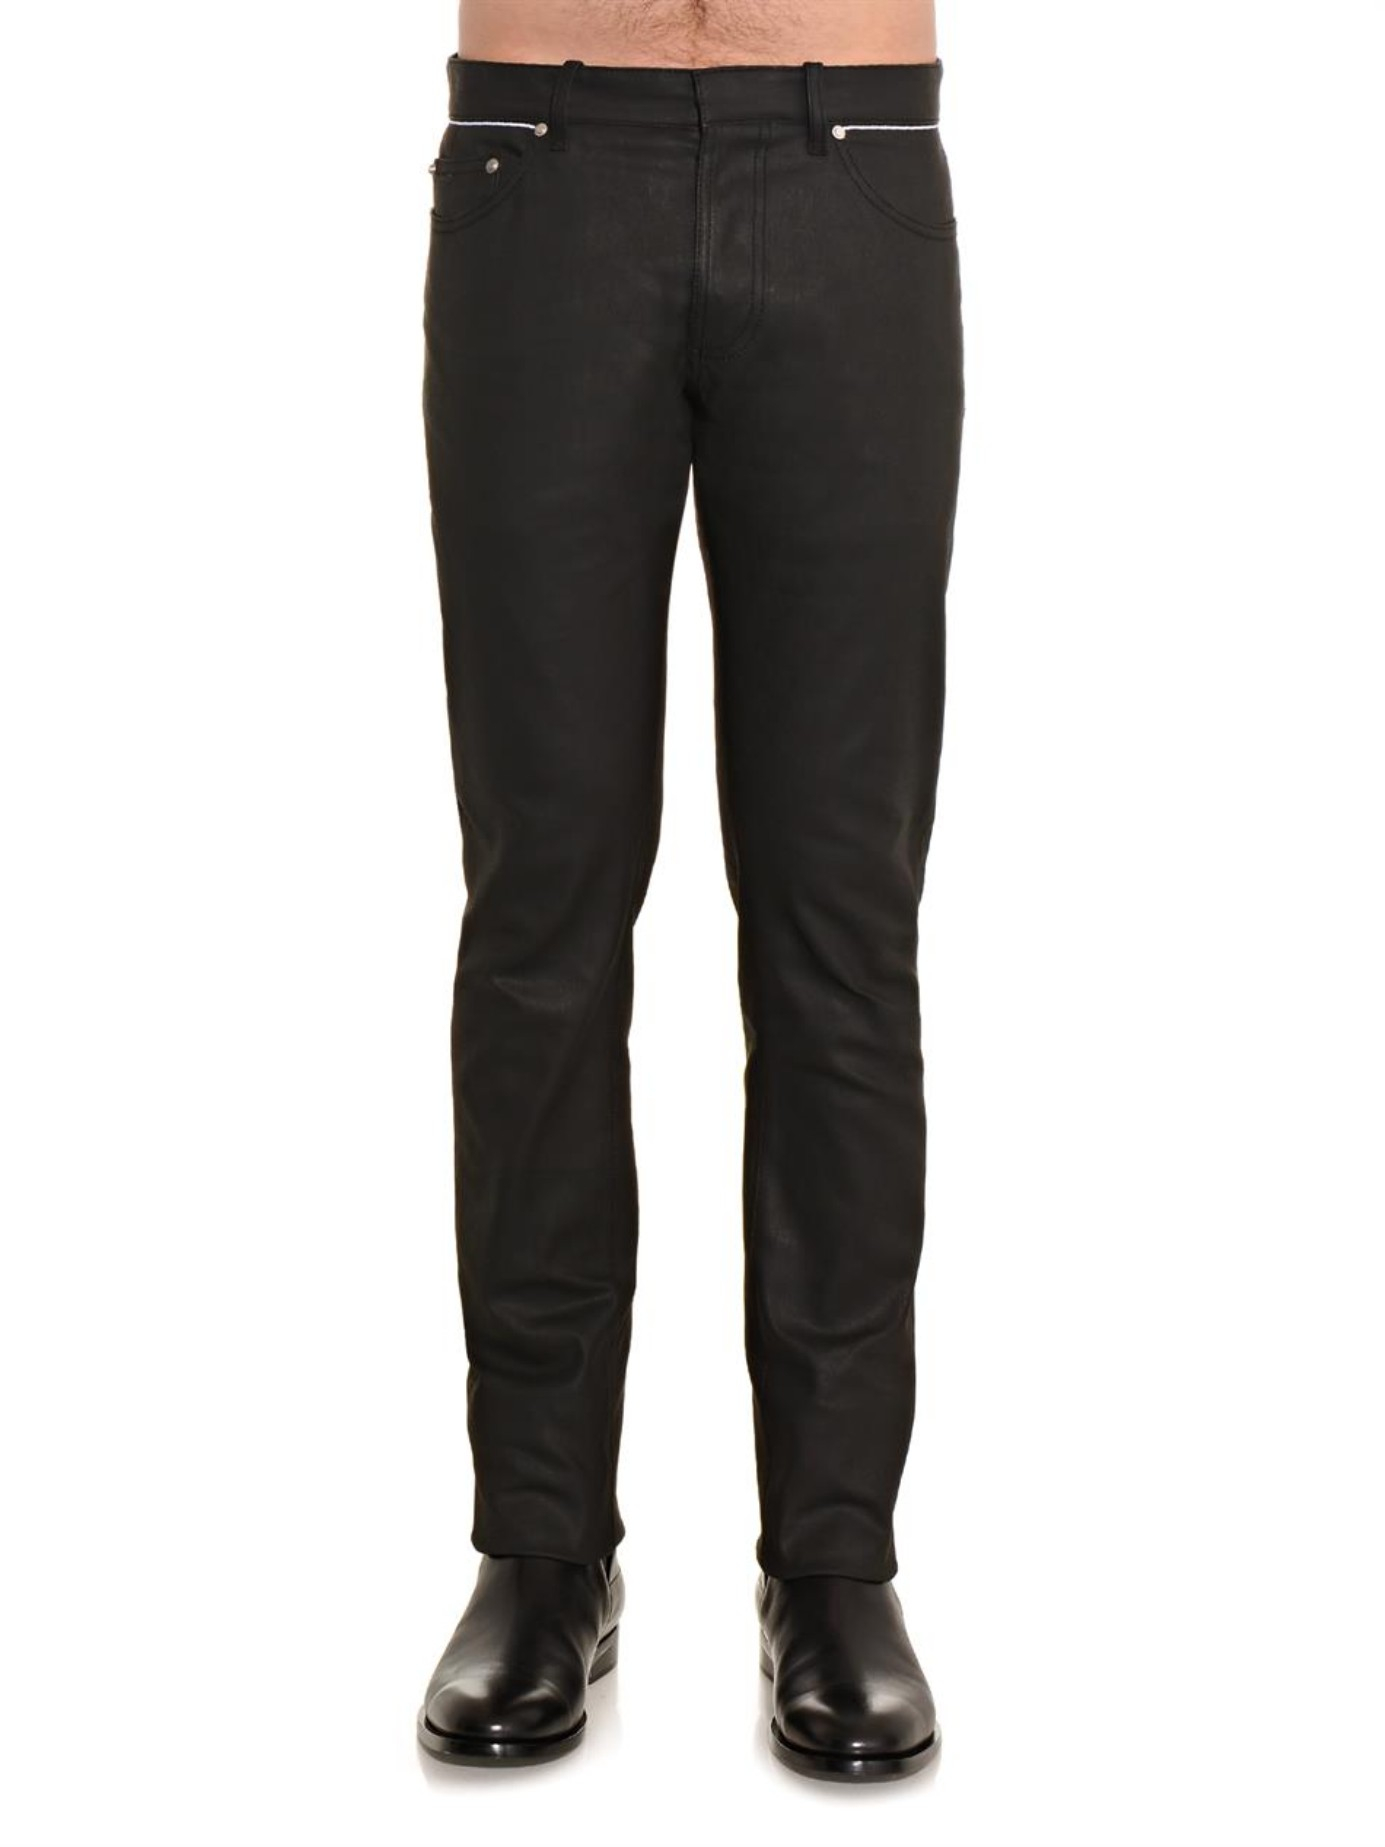 Find black coated jeans men at ShopStyle. Shop the latest collection of black coated jeans men from the most popular stores - all in one place.